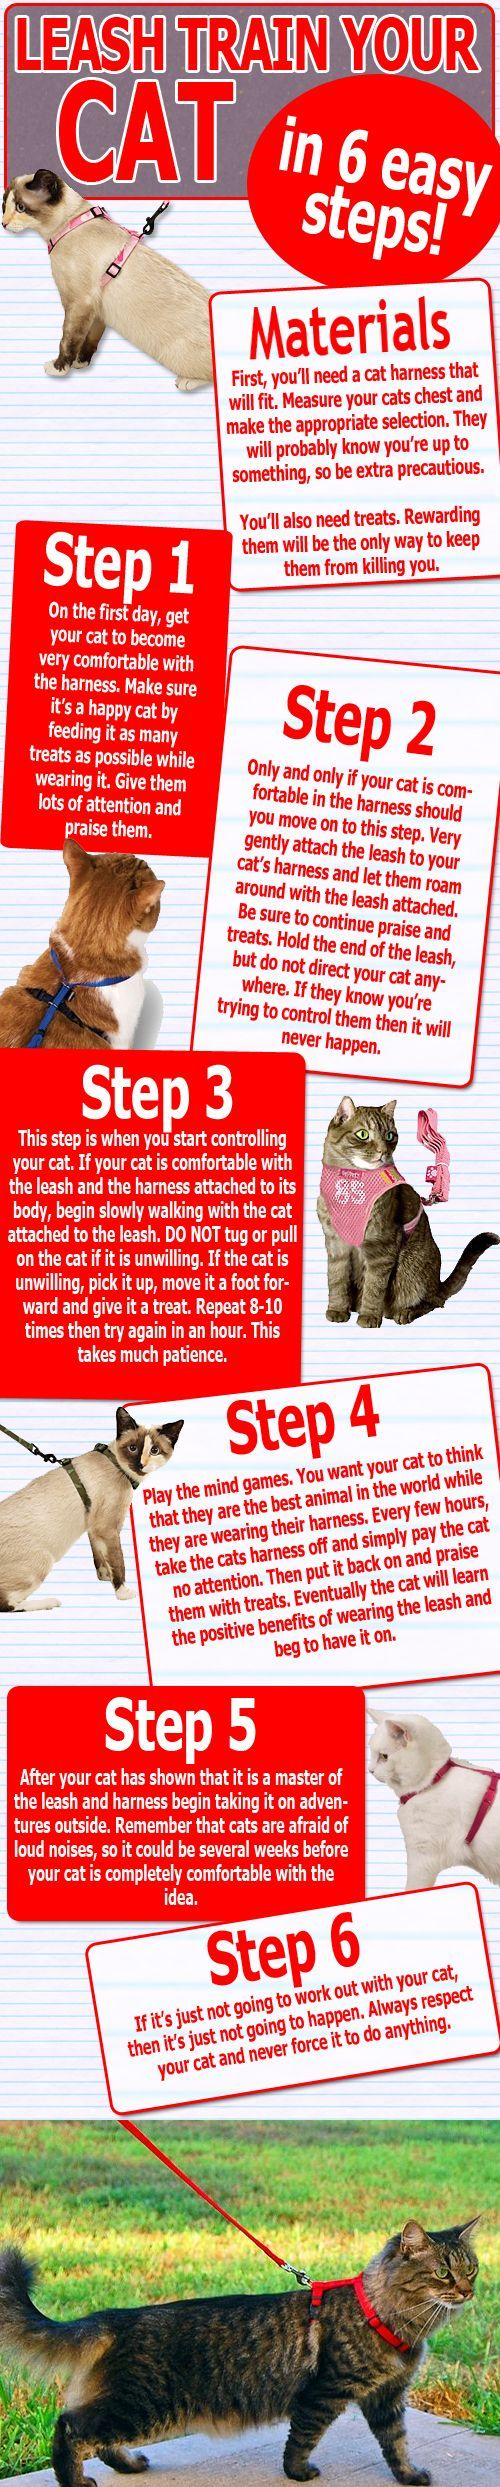 Leash Train Your Cat in 6 Easy Steps